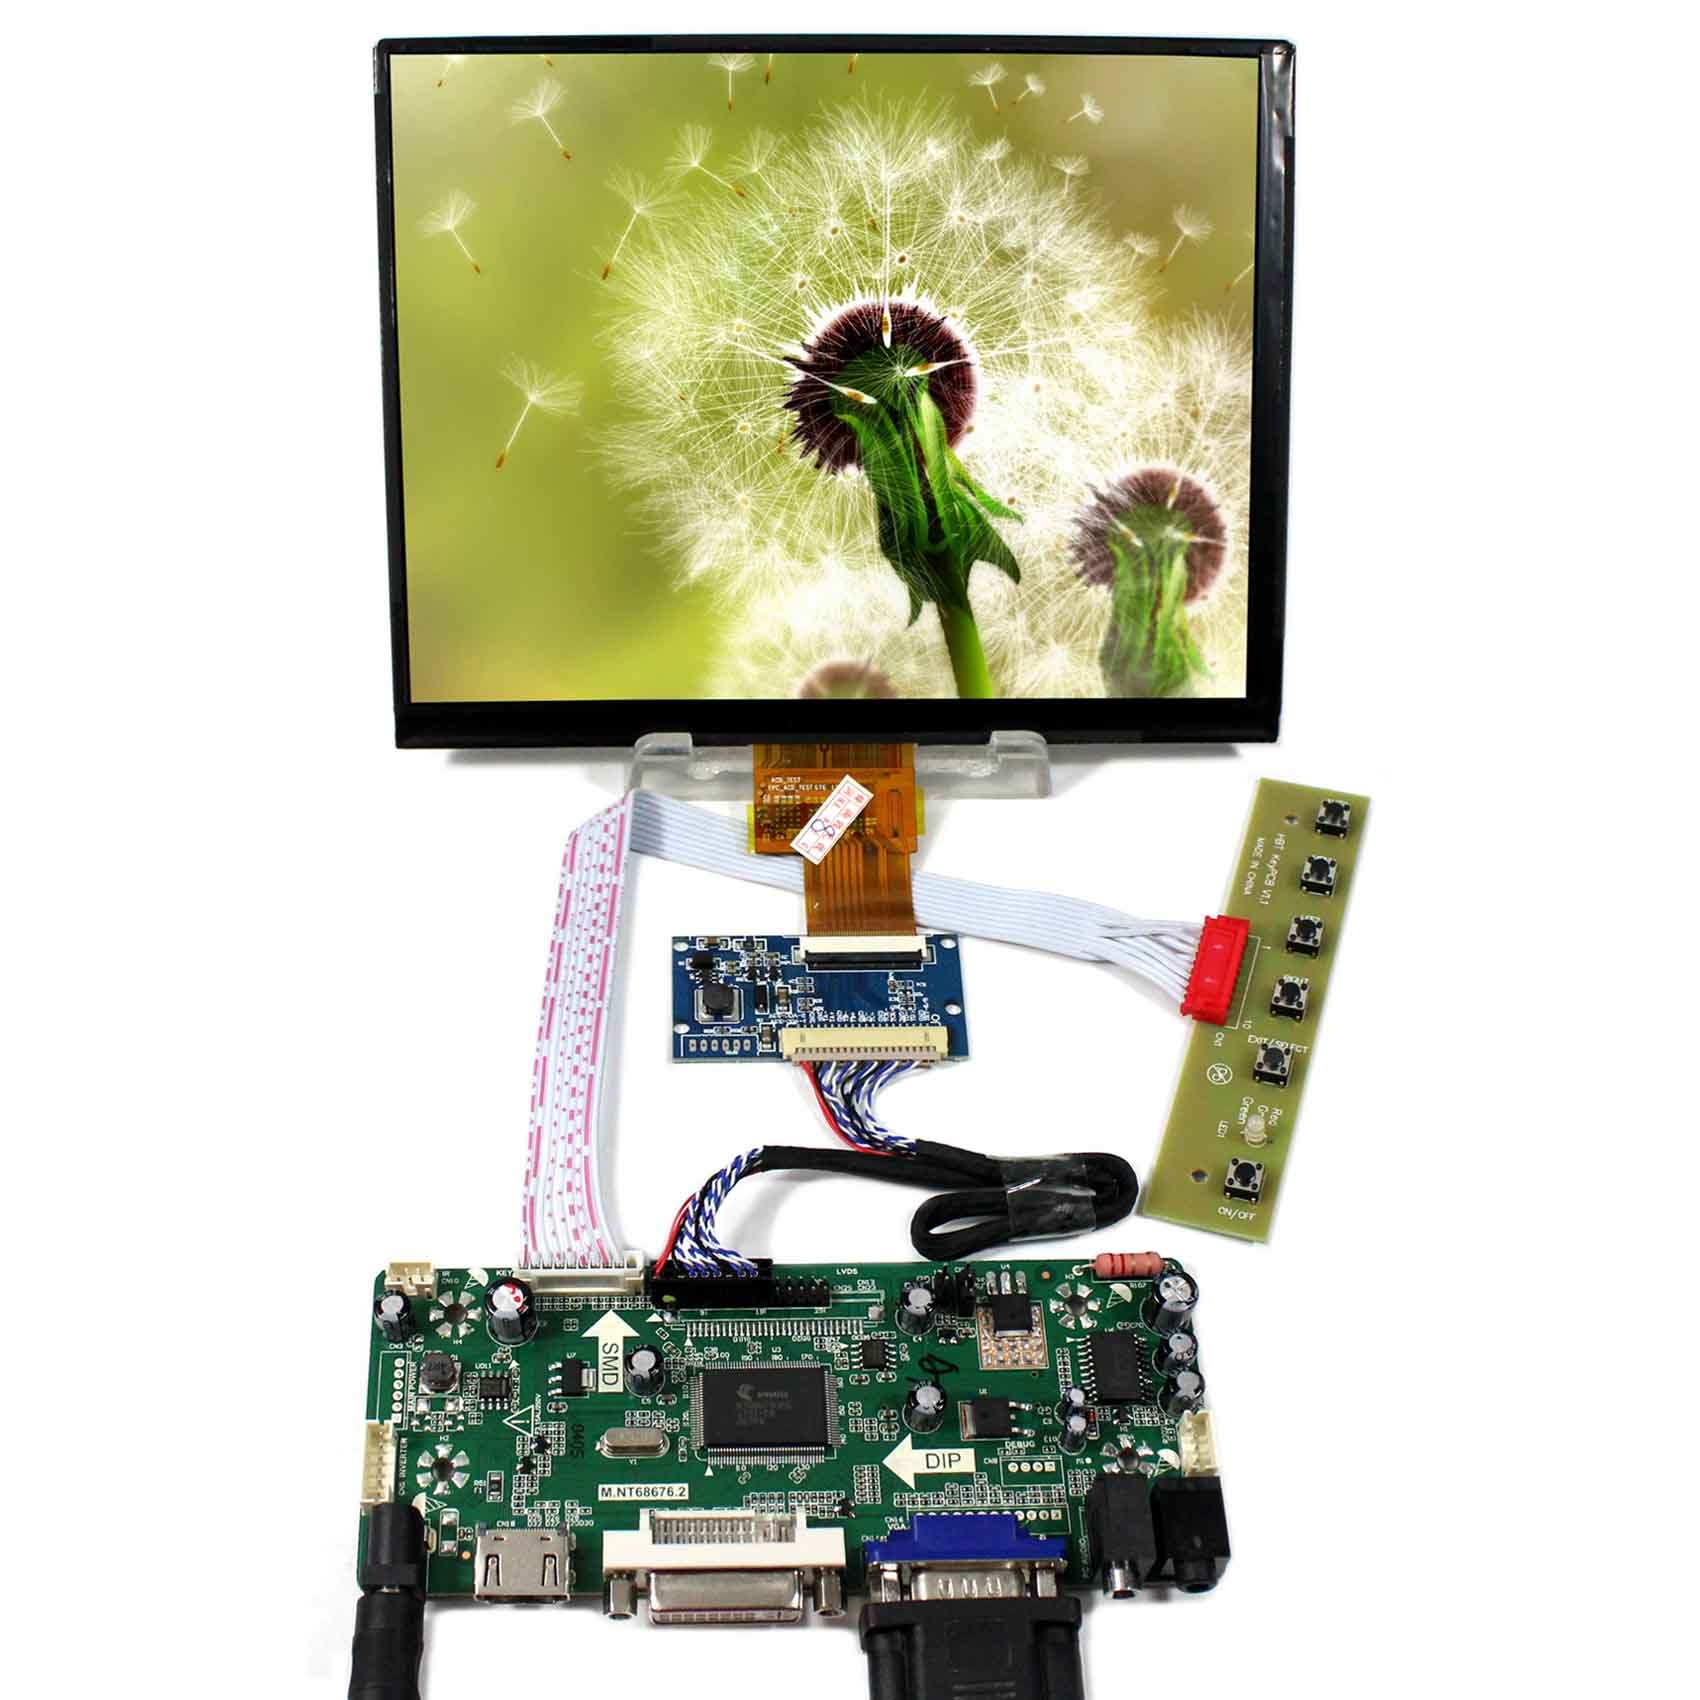 HDMI+DVI+VGA+Audio LCD Control Board+8inch 1024x768 HJ080IA-01E IPS LCD Panel hdmi vga av control driver board 8 inch hl080ia 01e hj080ia 01e 1024 768 ips high definition lcd display for raspberry pi